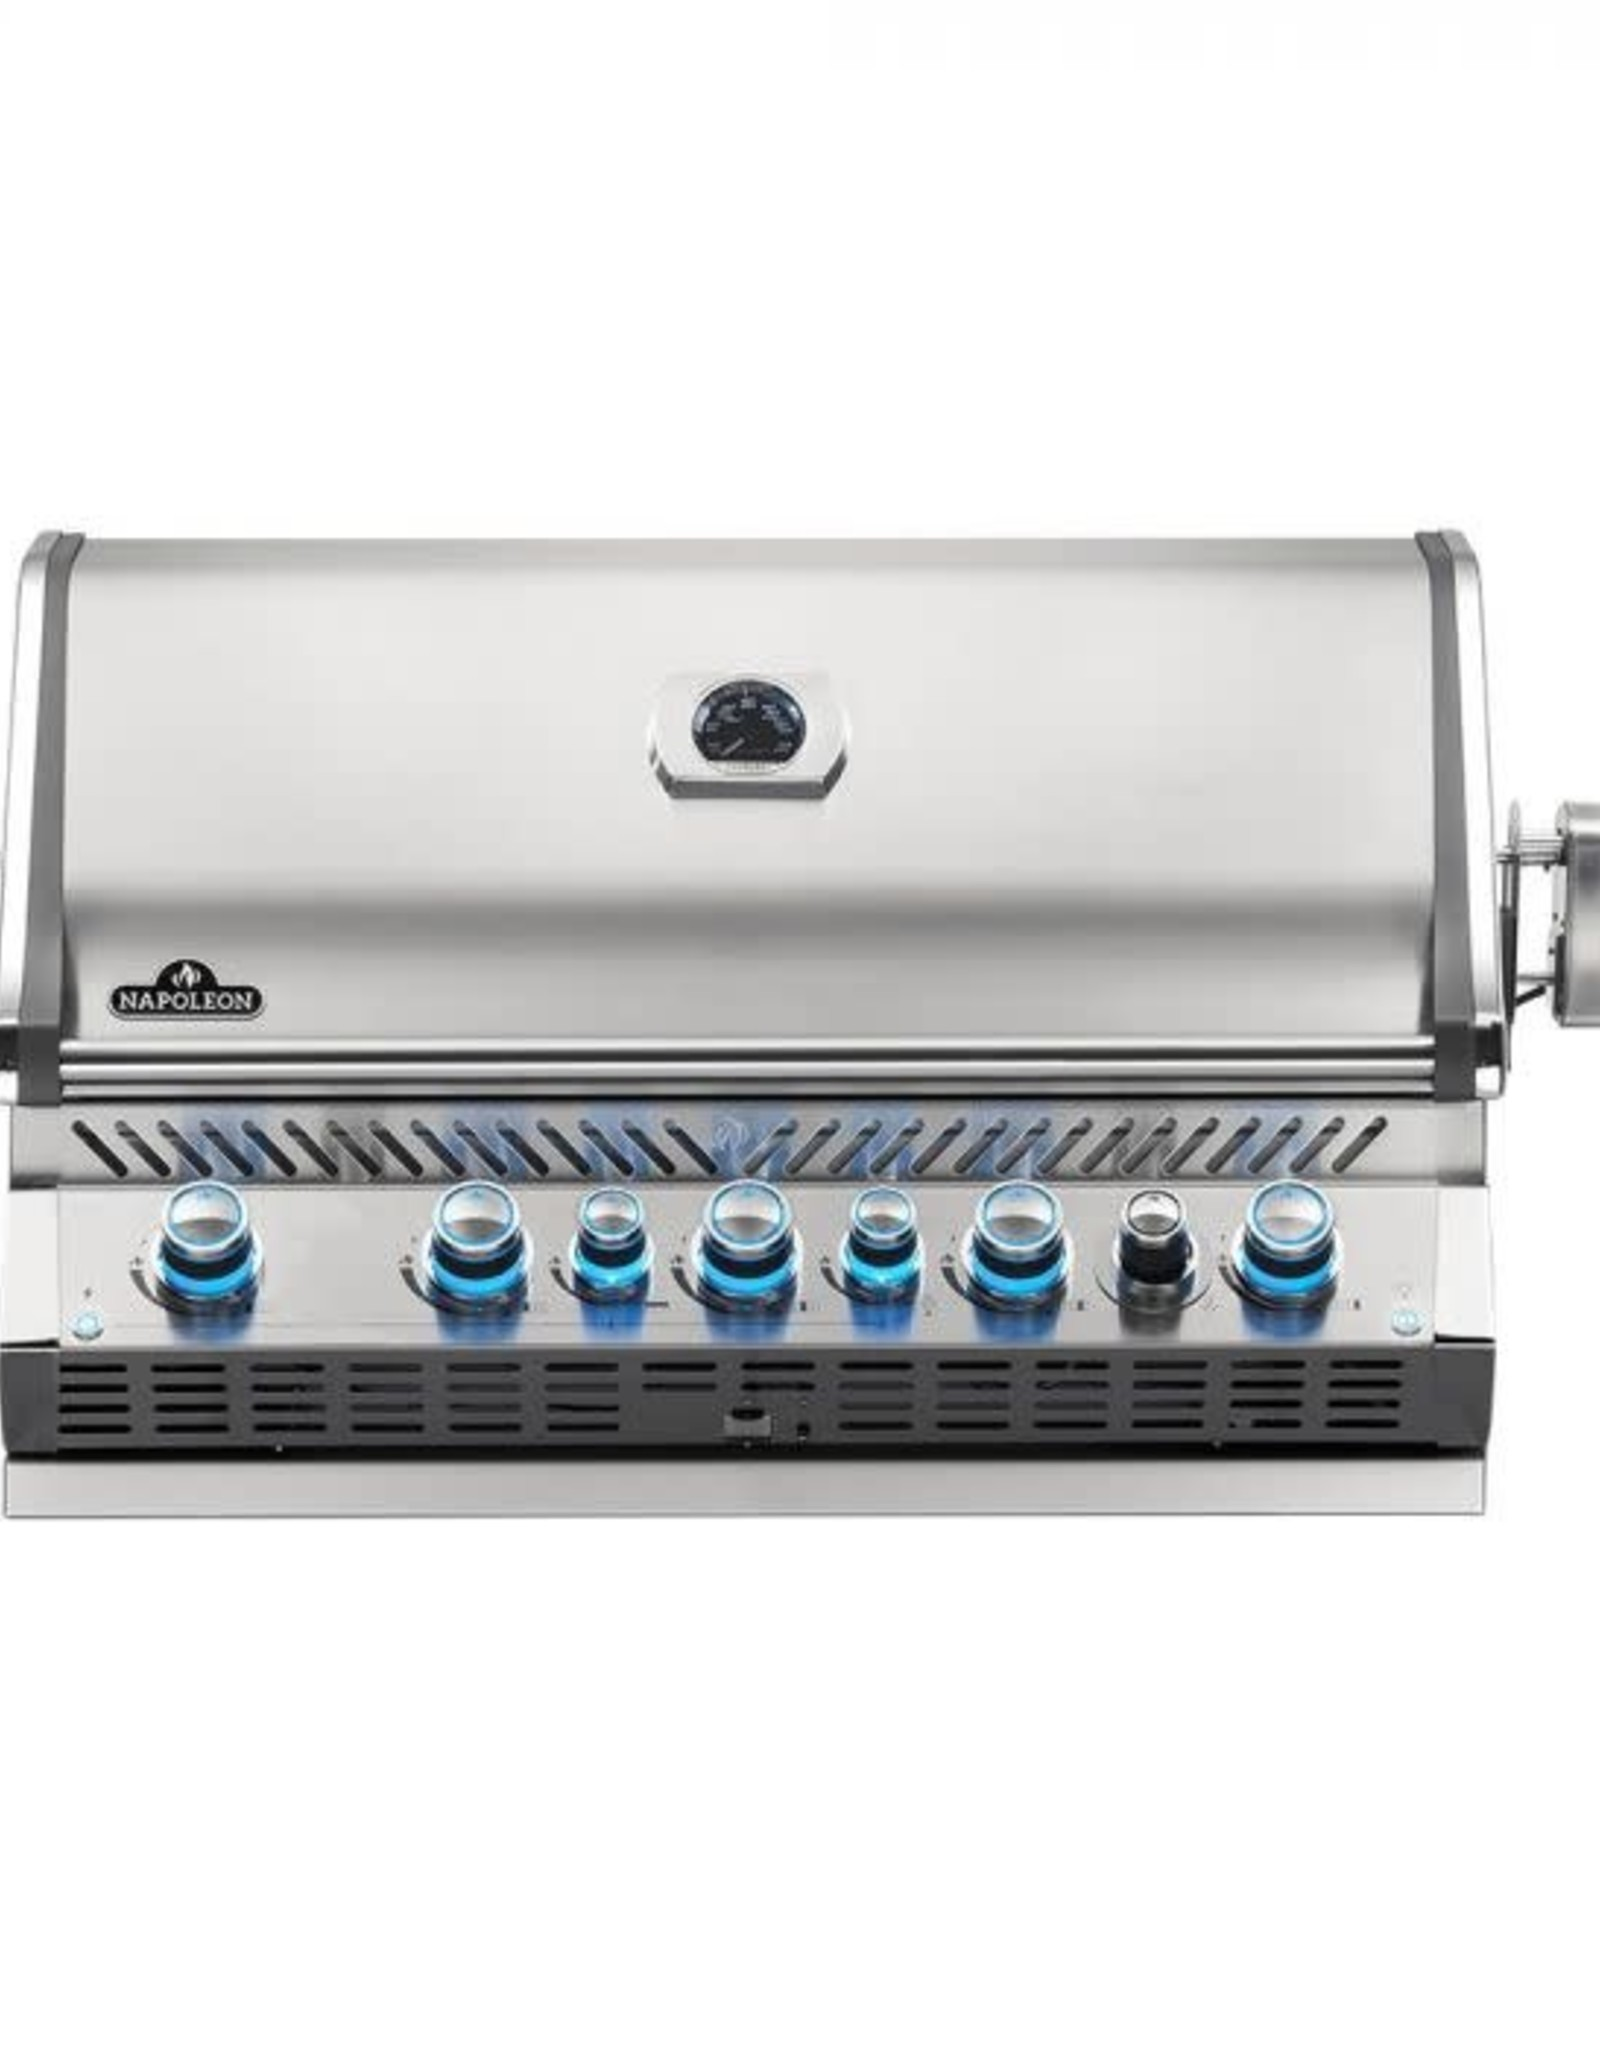 Napoleon Napoleon Prestige PRO 665 Built-in Natural Gas Grill with Infrared Rear Burner and Rotisserie Kit - BIPRO665RBNSS-3